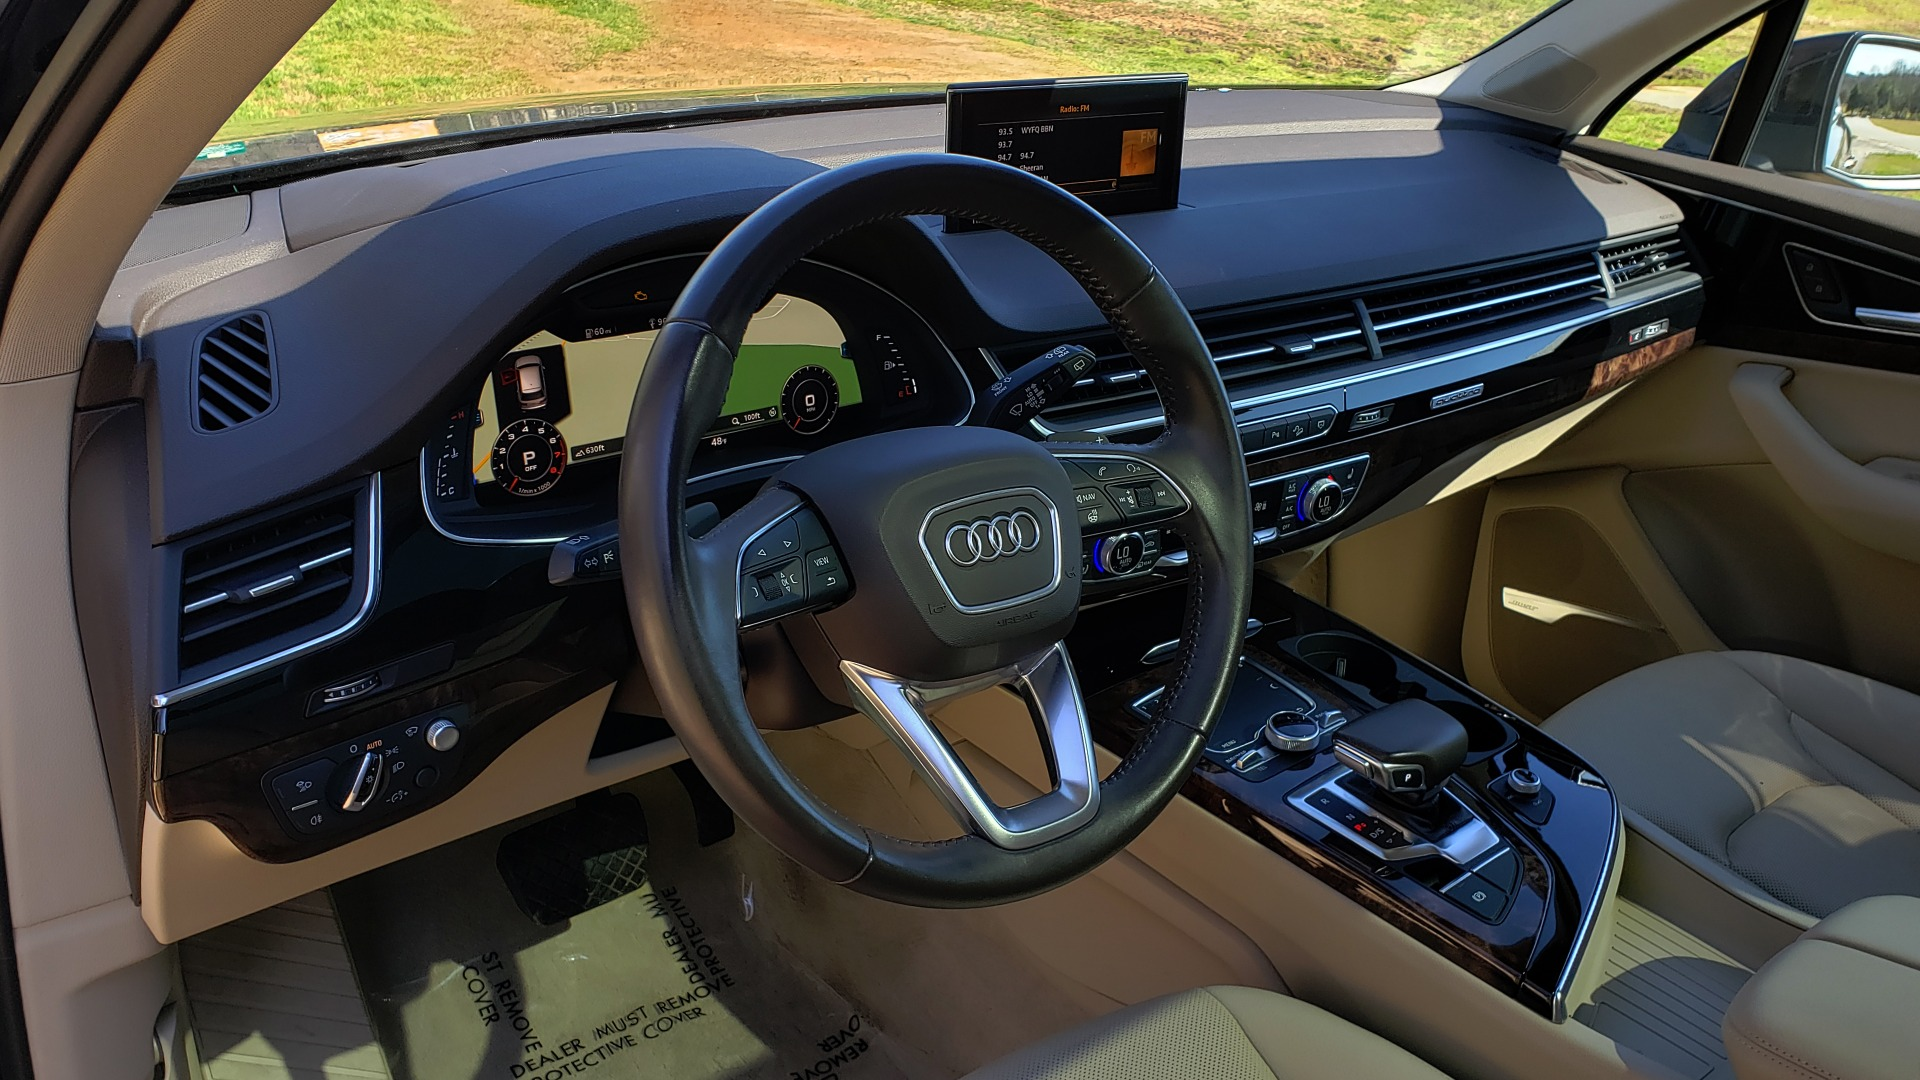 Used 2018 Audi Q7 PRESTIGE 3.0T CLD WTHR / NAV / BOSE / HEADS-UP / REARVIEW for sale Sold at Formula Imports in Charlotte NC 28227 37